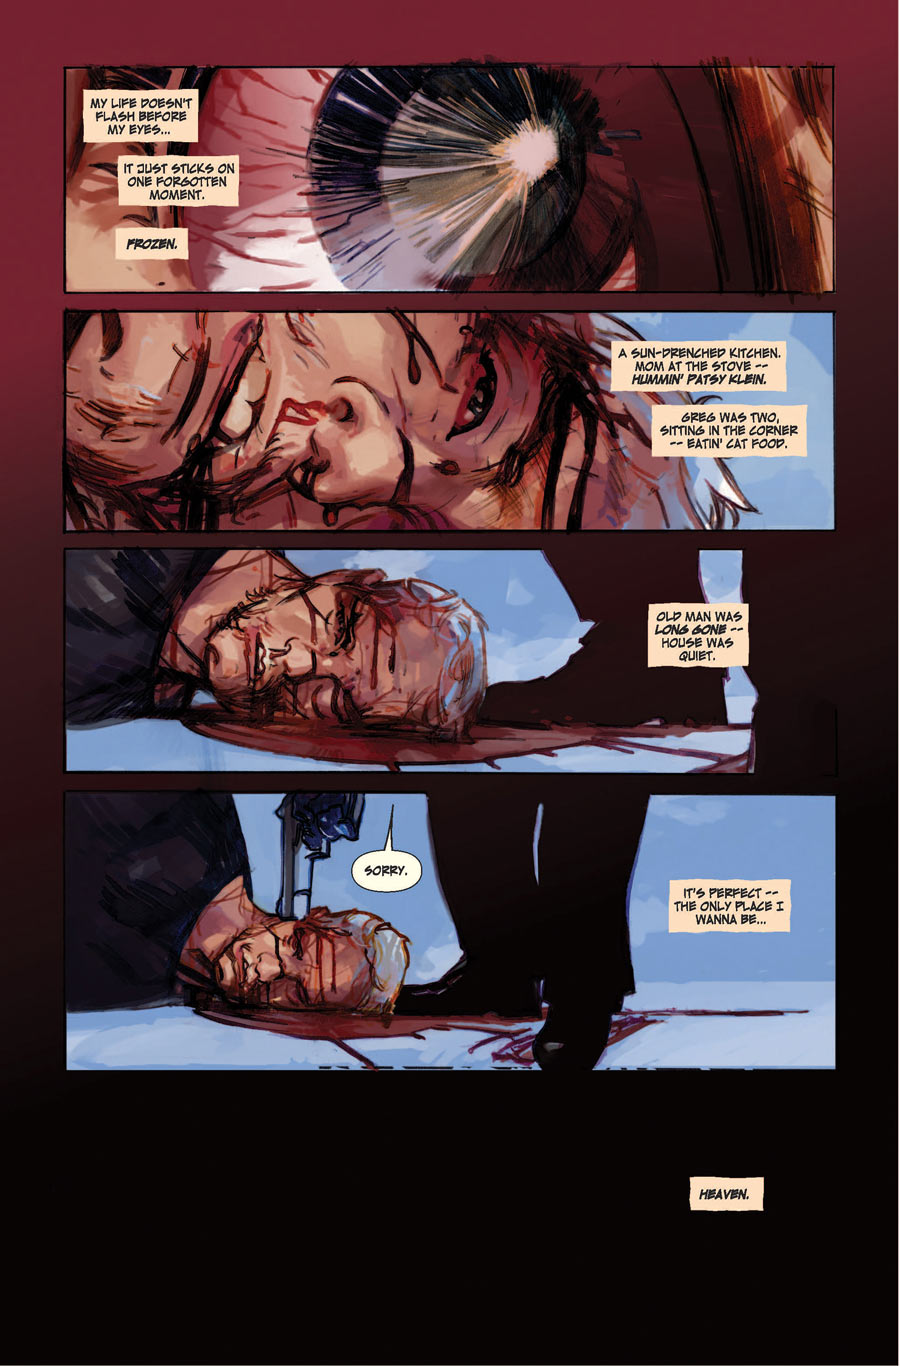 Noir Comics The Last Days Of American Crime By Rick Remender And Greg Tocchini Noirwhale